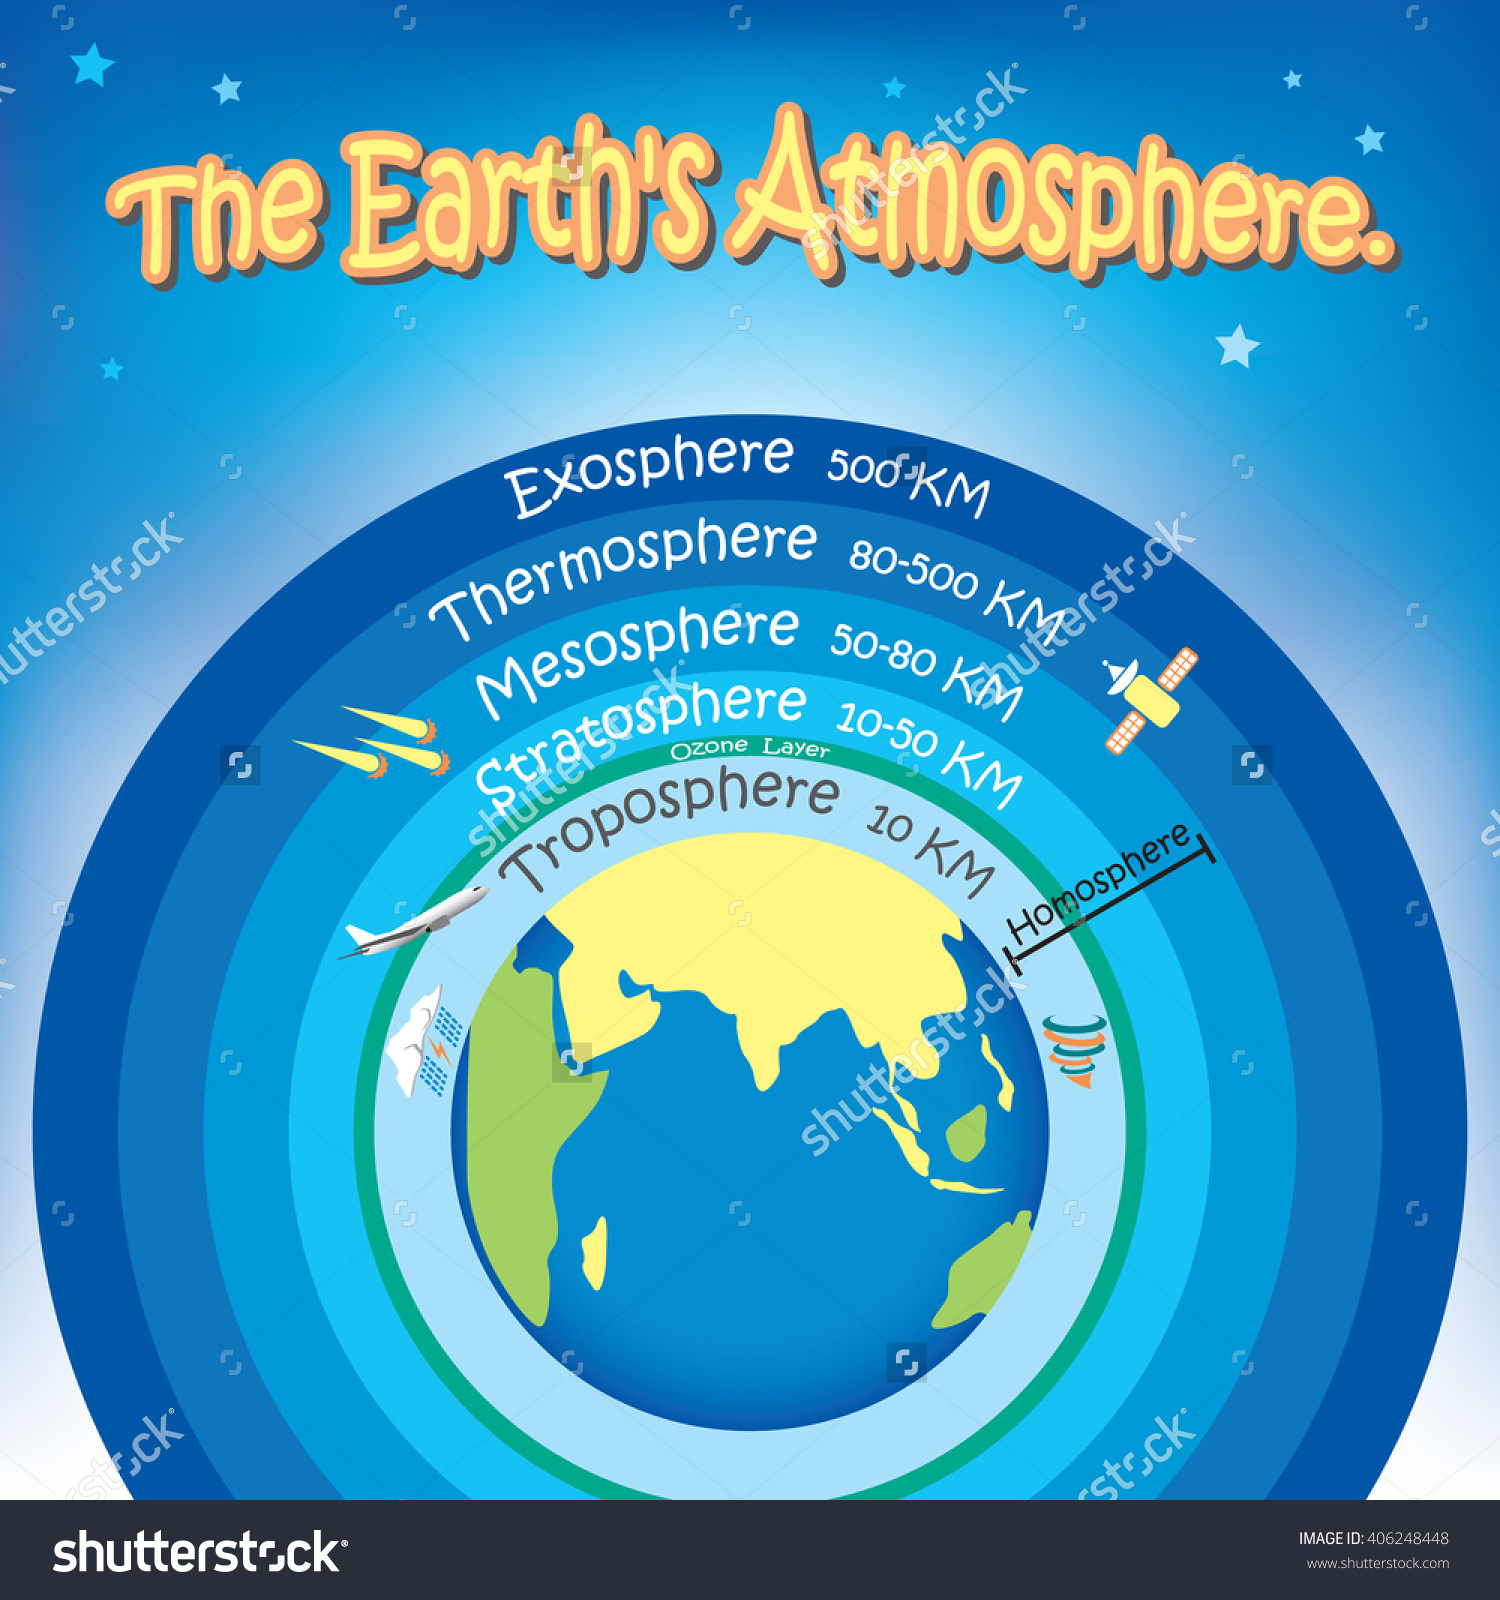 Earths Atmosphere Cartoon Style Children Stock Vector 406248448.